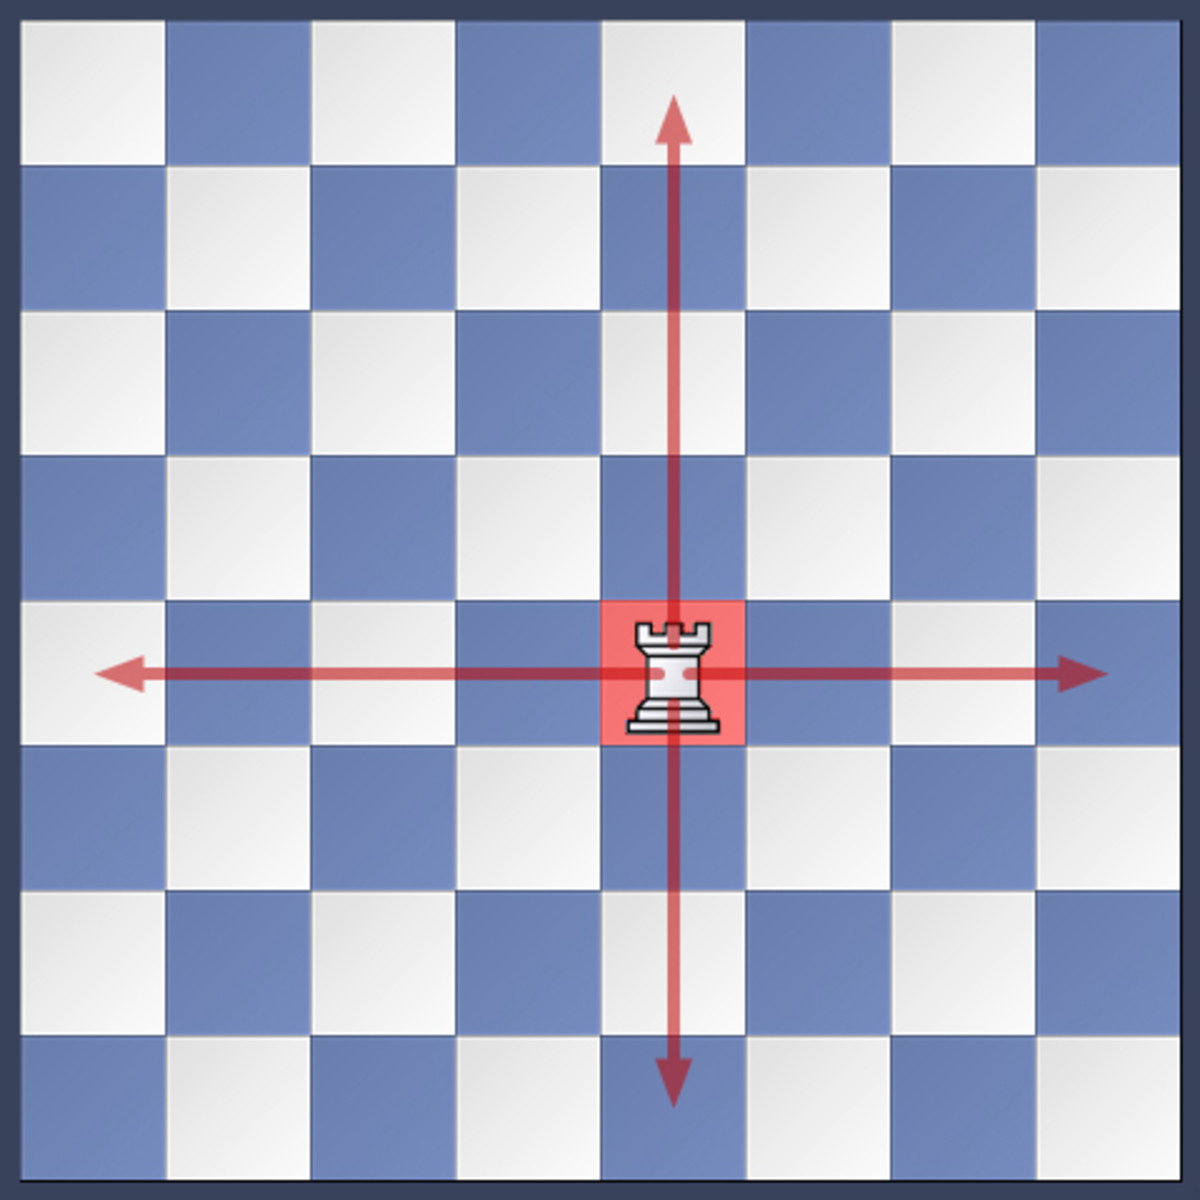 The rook can move to any square that is vertical or horizontal to their starting position.